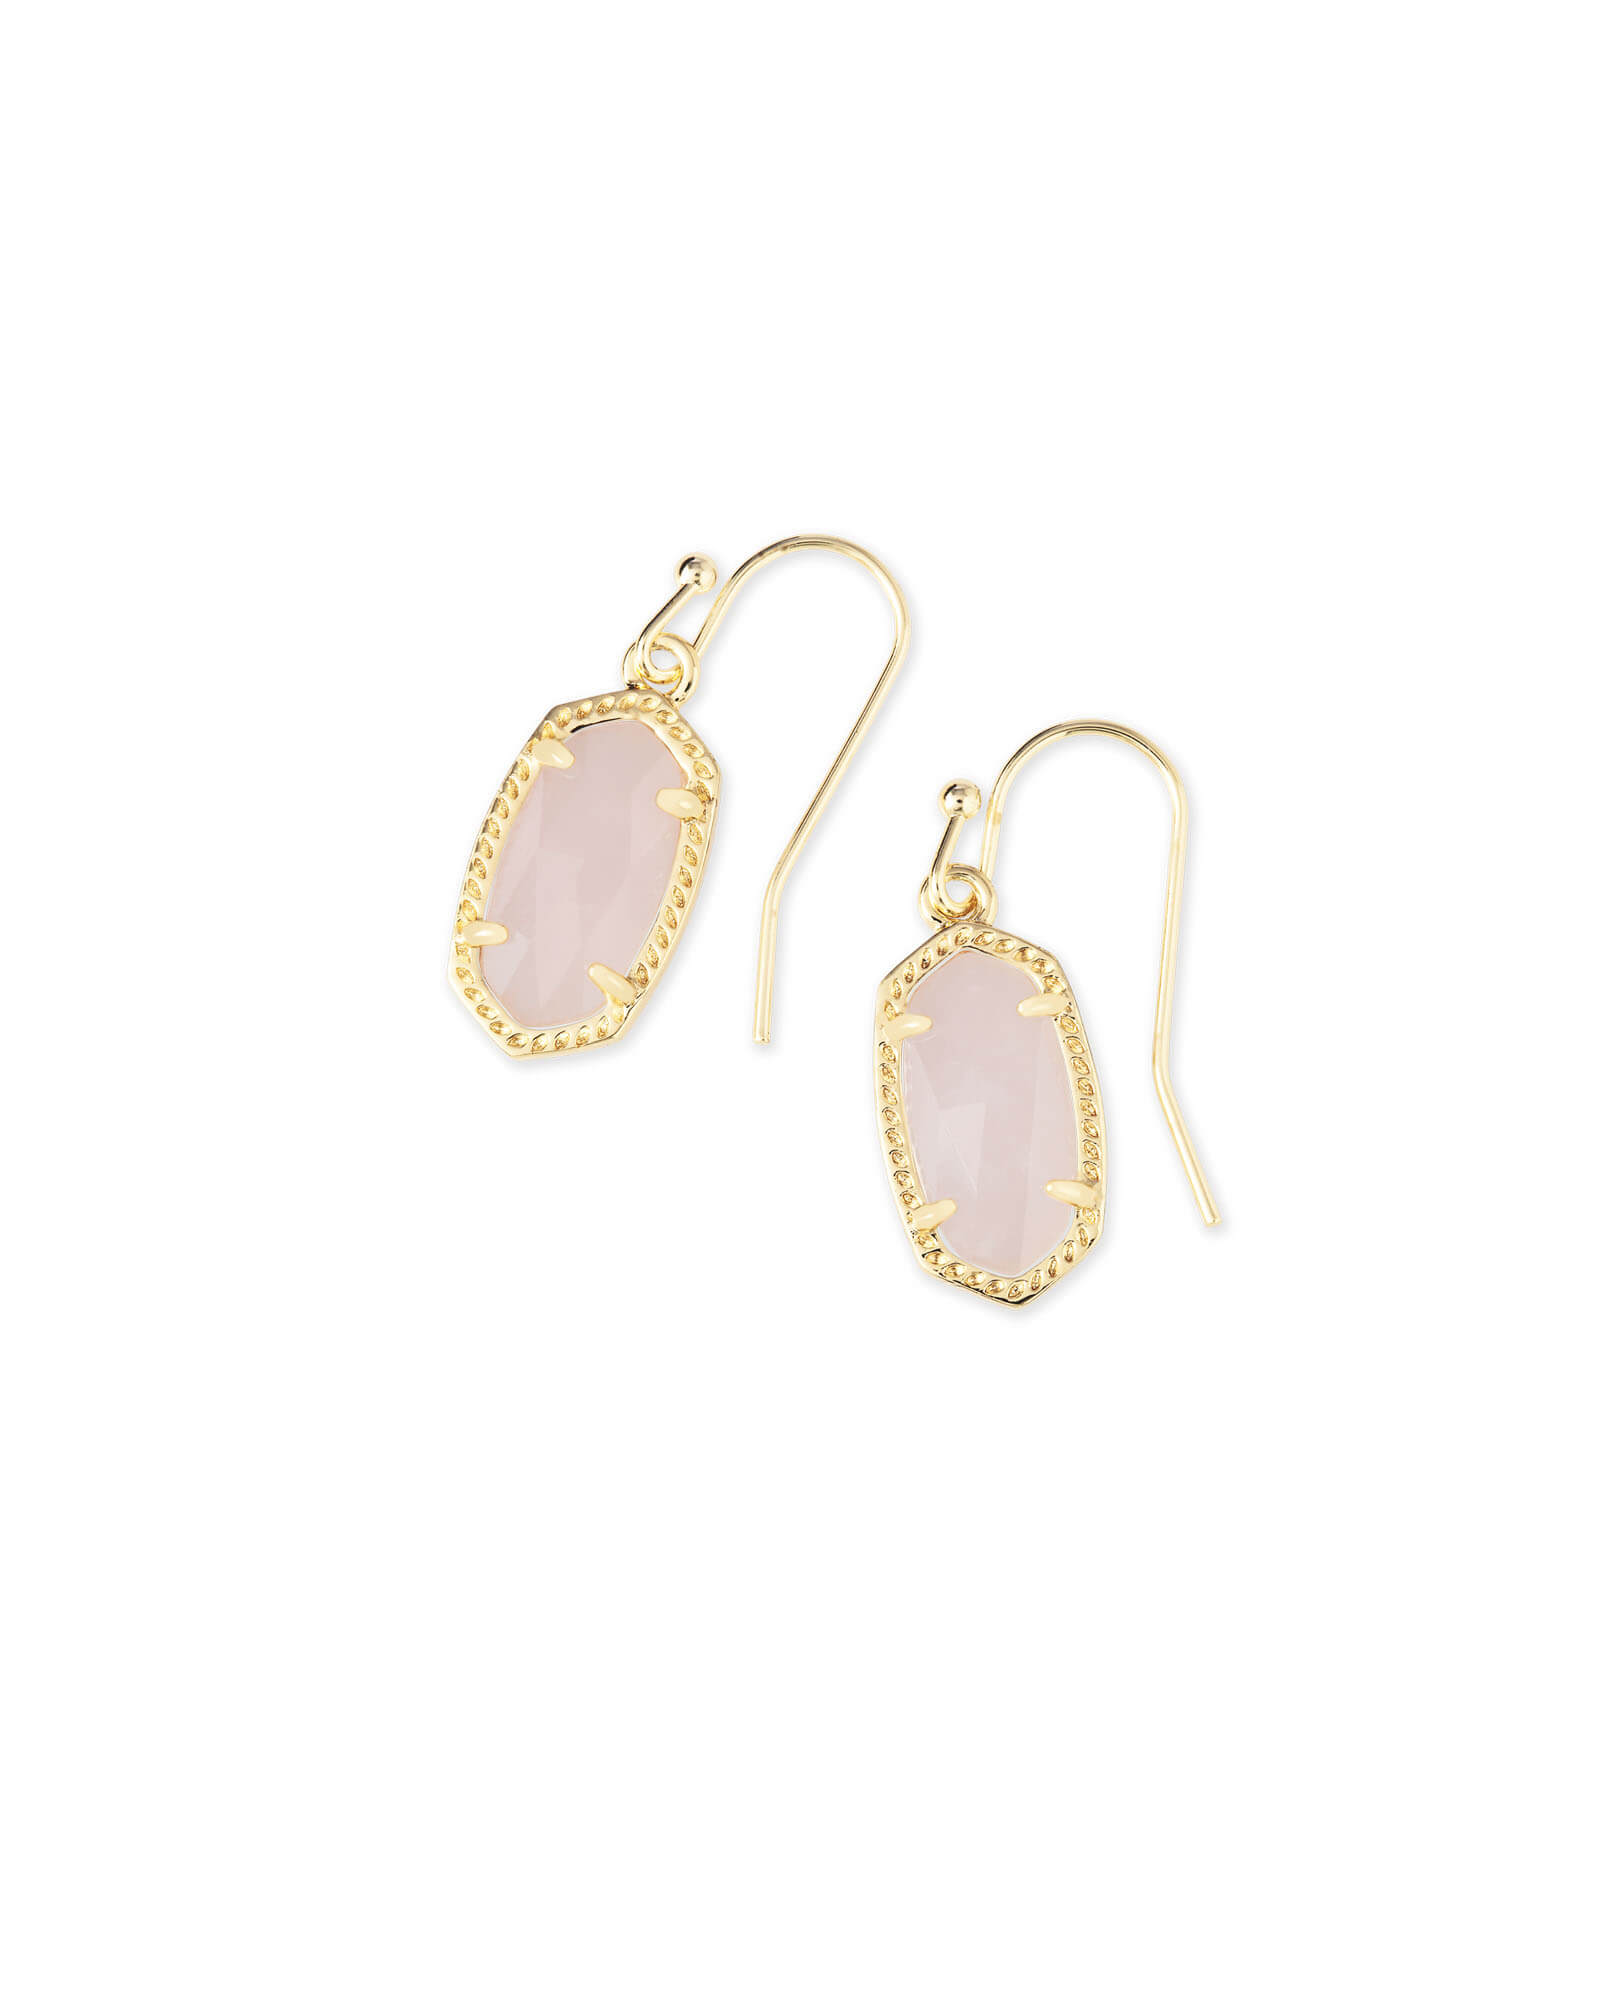 Lee Gold Drop Earrings in Rose Quartz